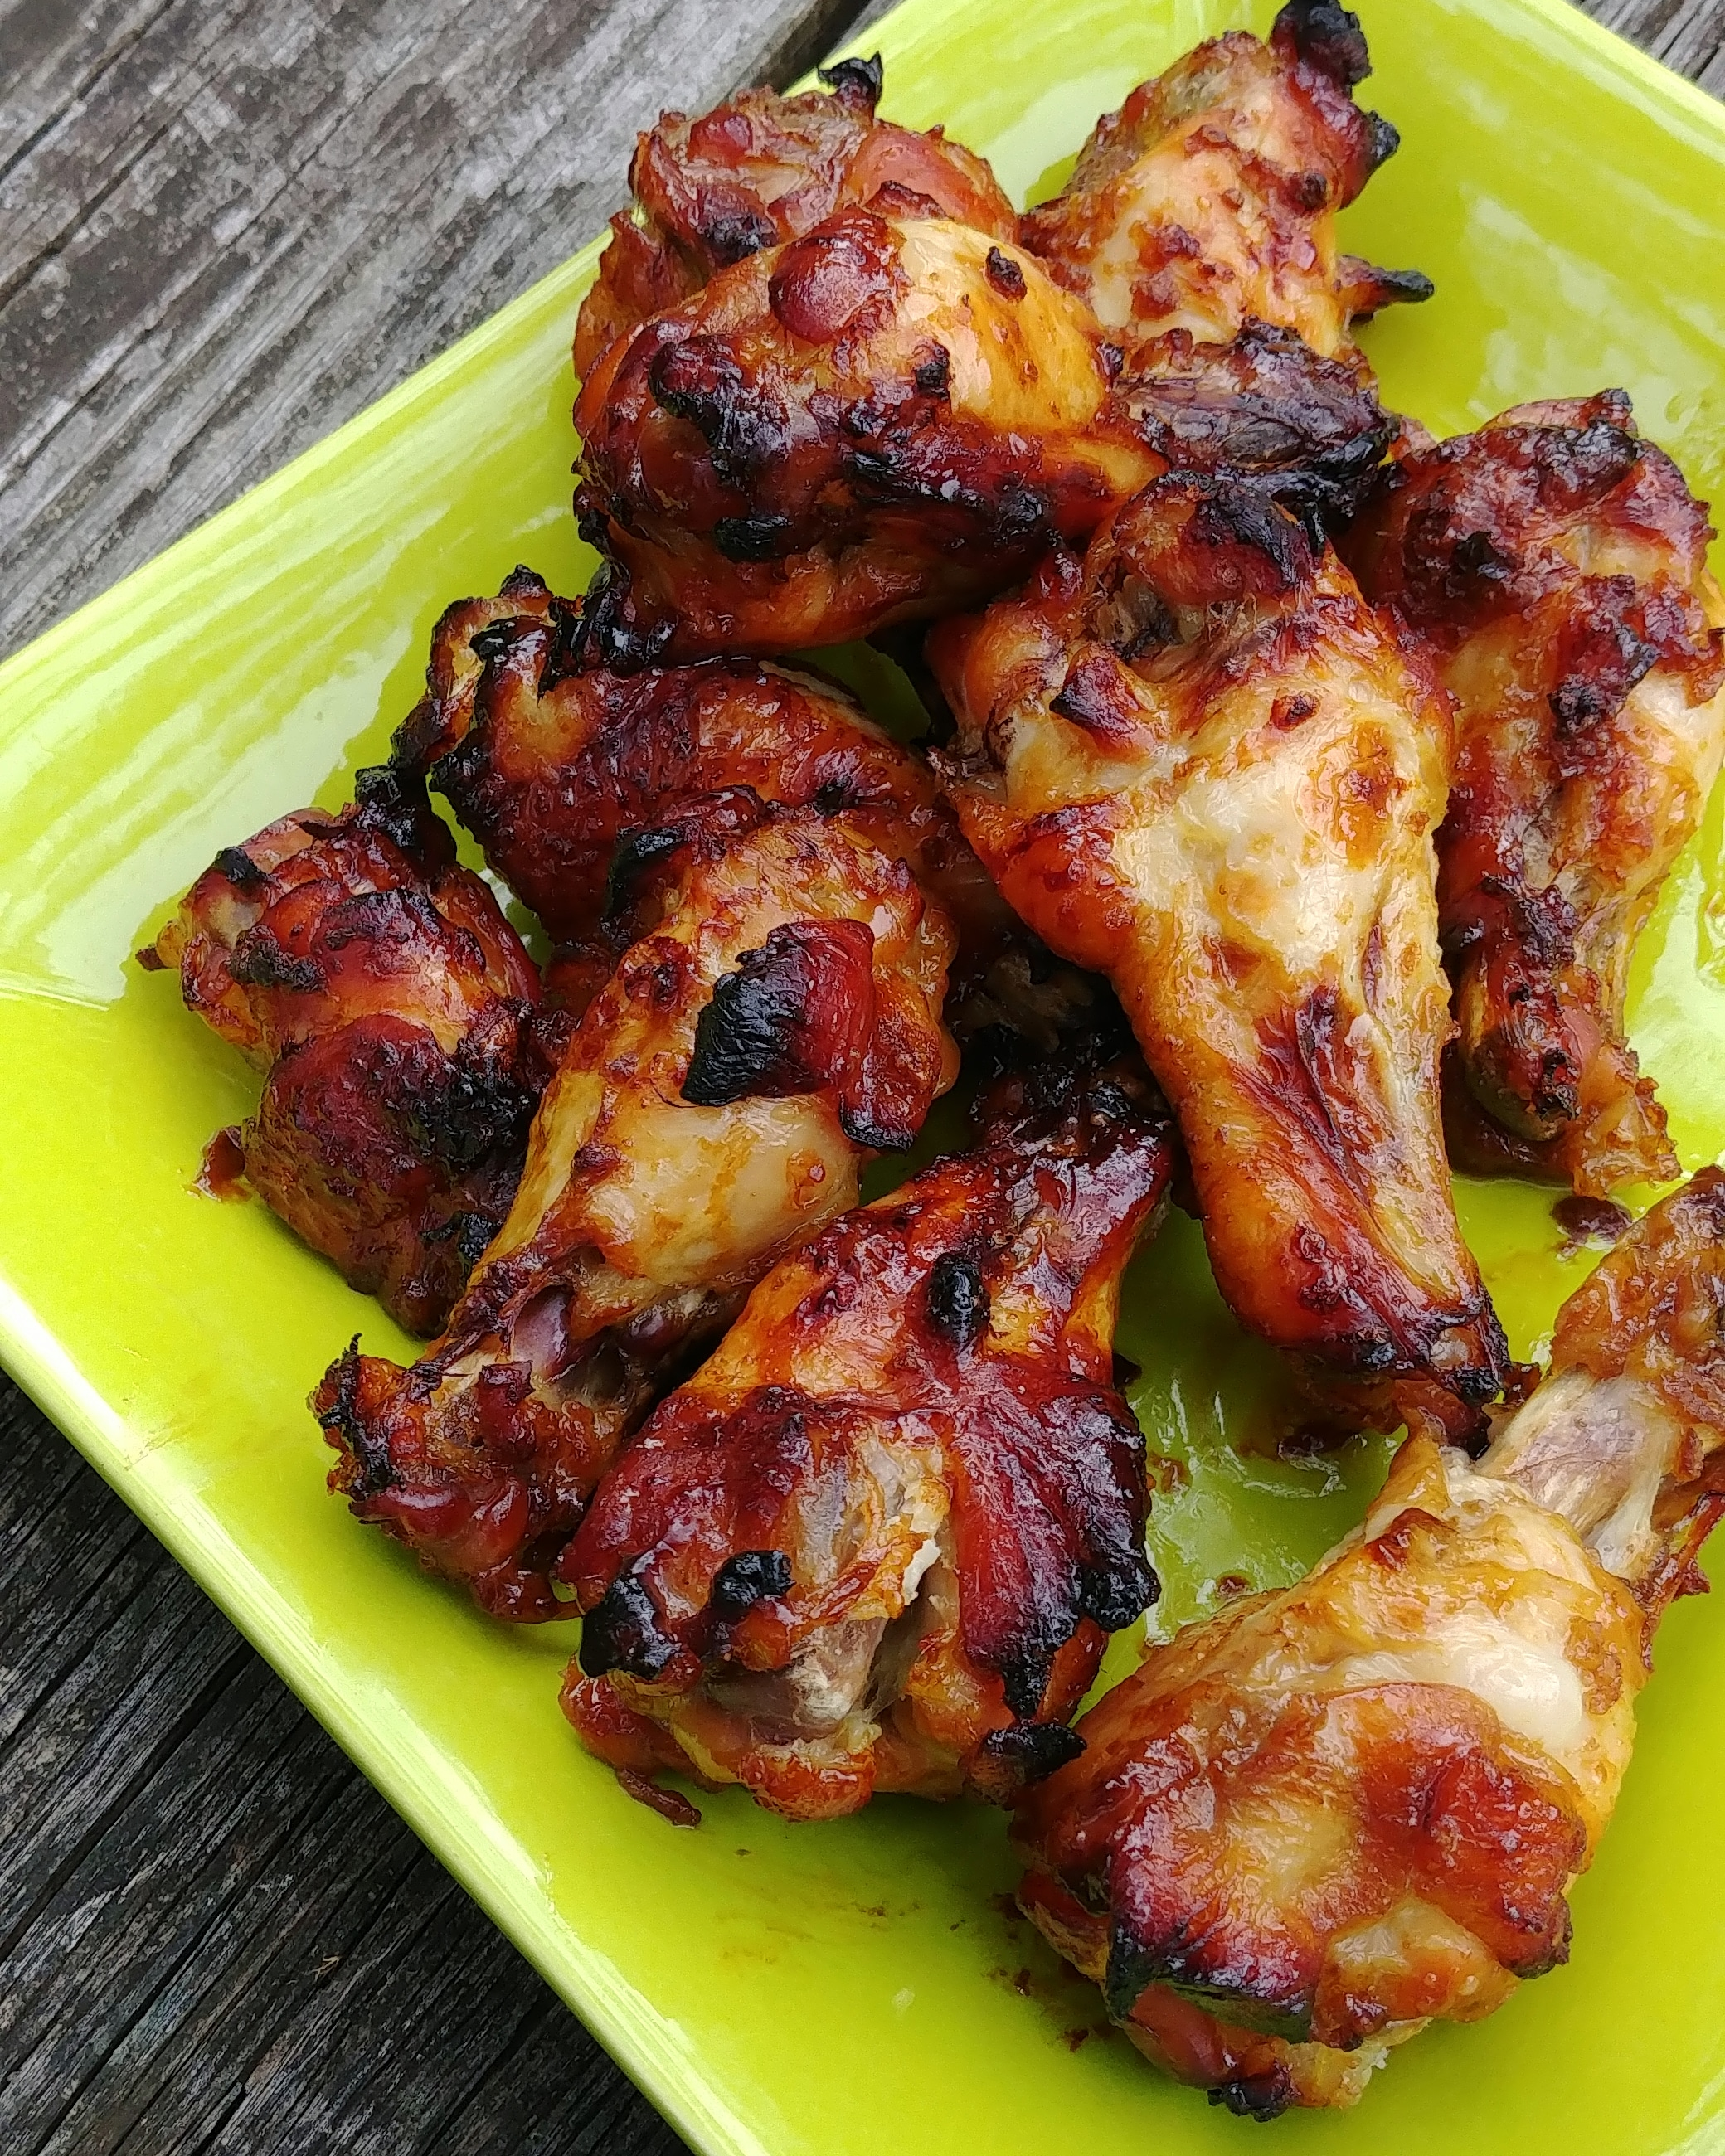 "An easy teriyaki marinade for baked chicken wings gets its sweet tropical tang from pineapple juice. ""This is my go to teriyaki wings recipe,"" says theharrower. ""The longer they marinate the better. While baking the wings in the oven, I simmer the sauce on the stove with 1/4 cup of cold water and 1 Tbs of corn starch. Once finished I toss the wings in the sauce. You can also put pineapple rings on top of the wings half way through baking. They come out great."""